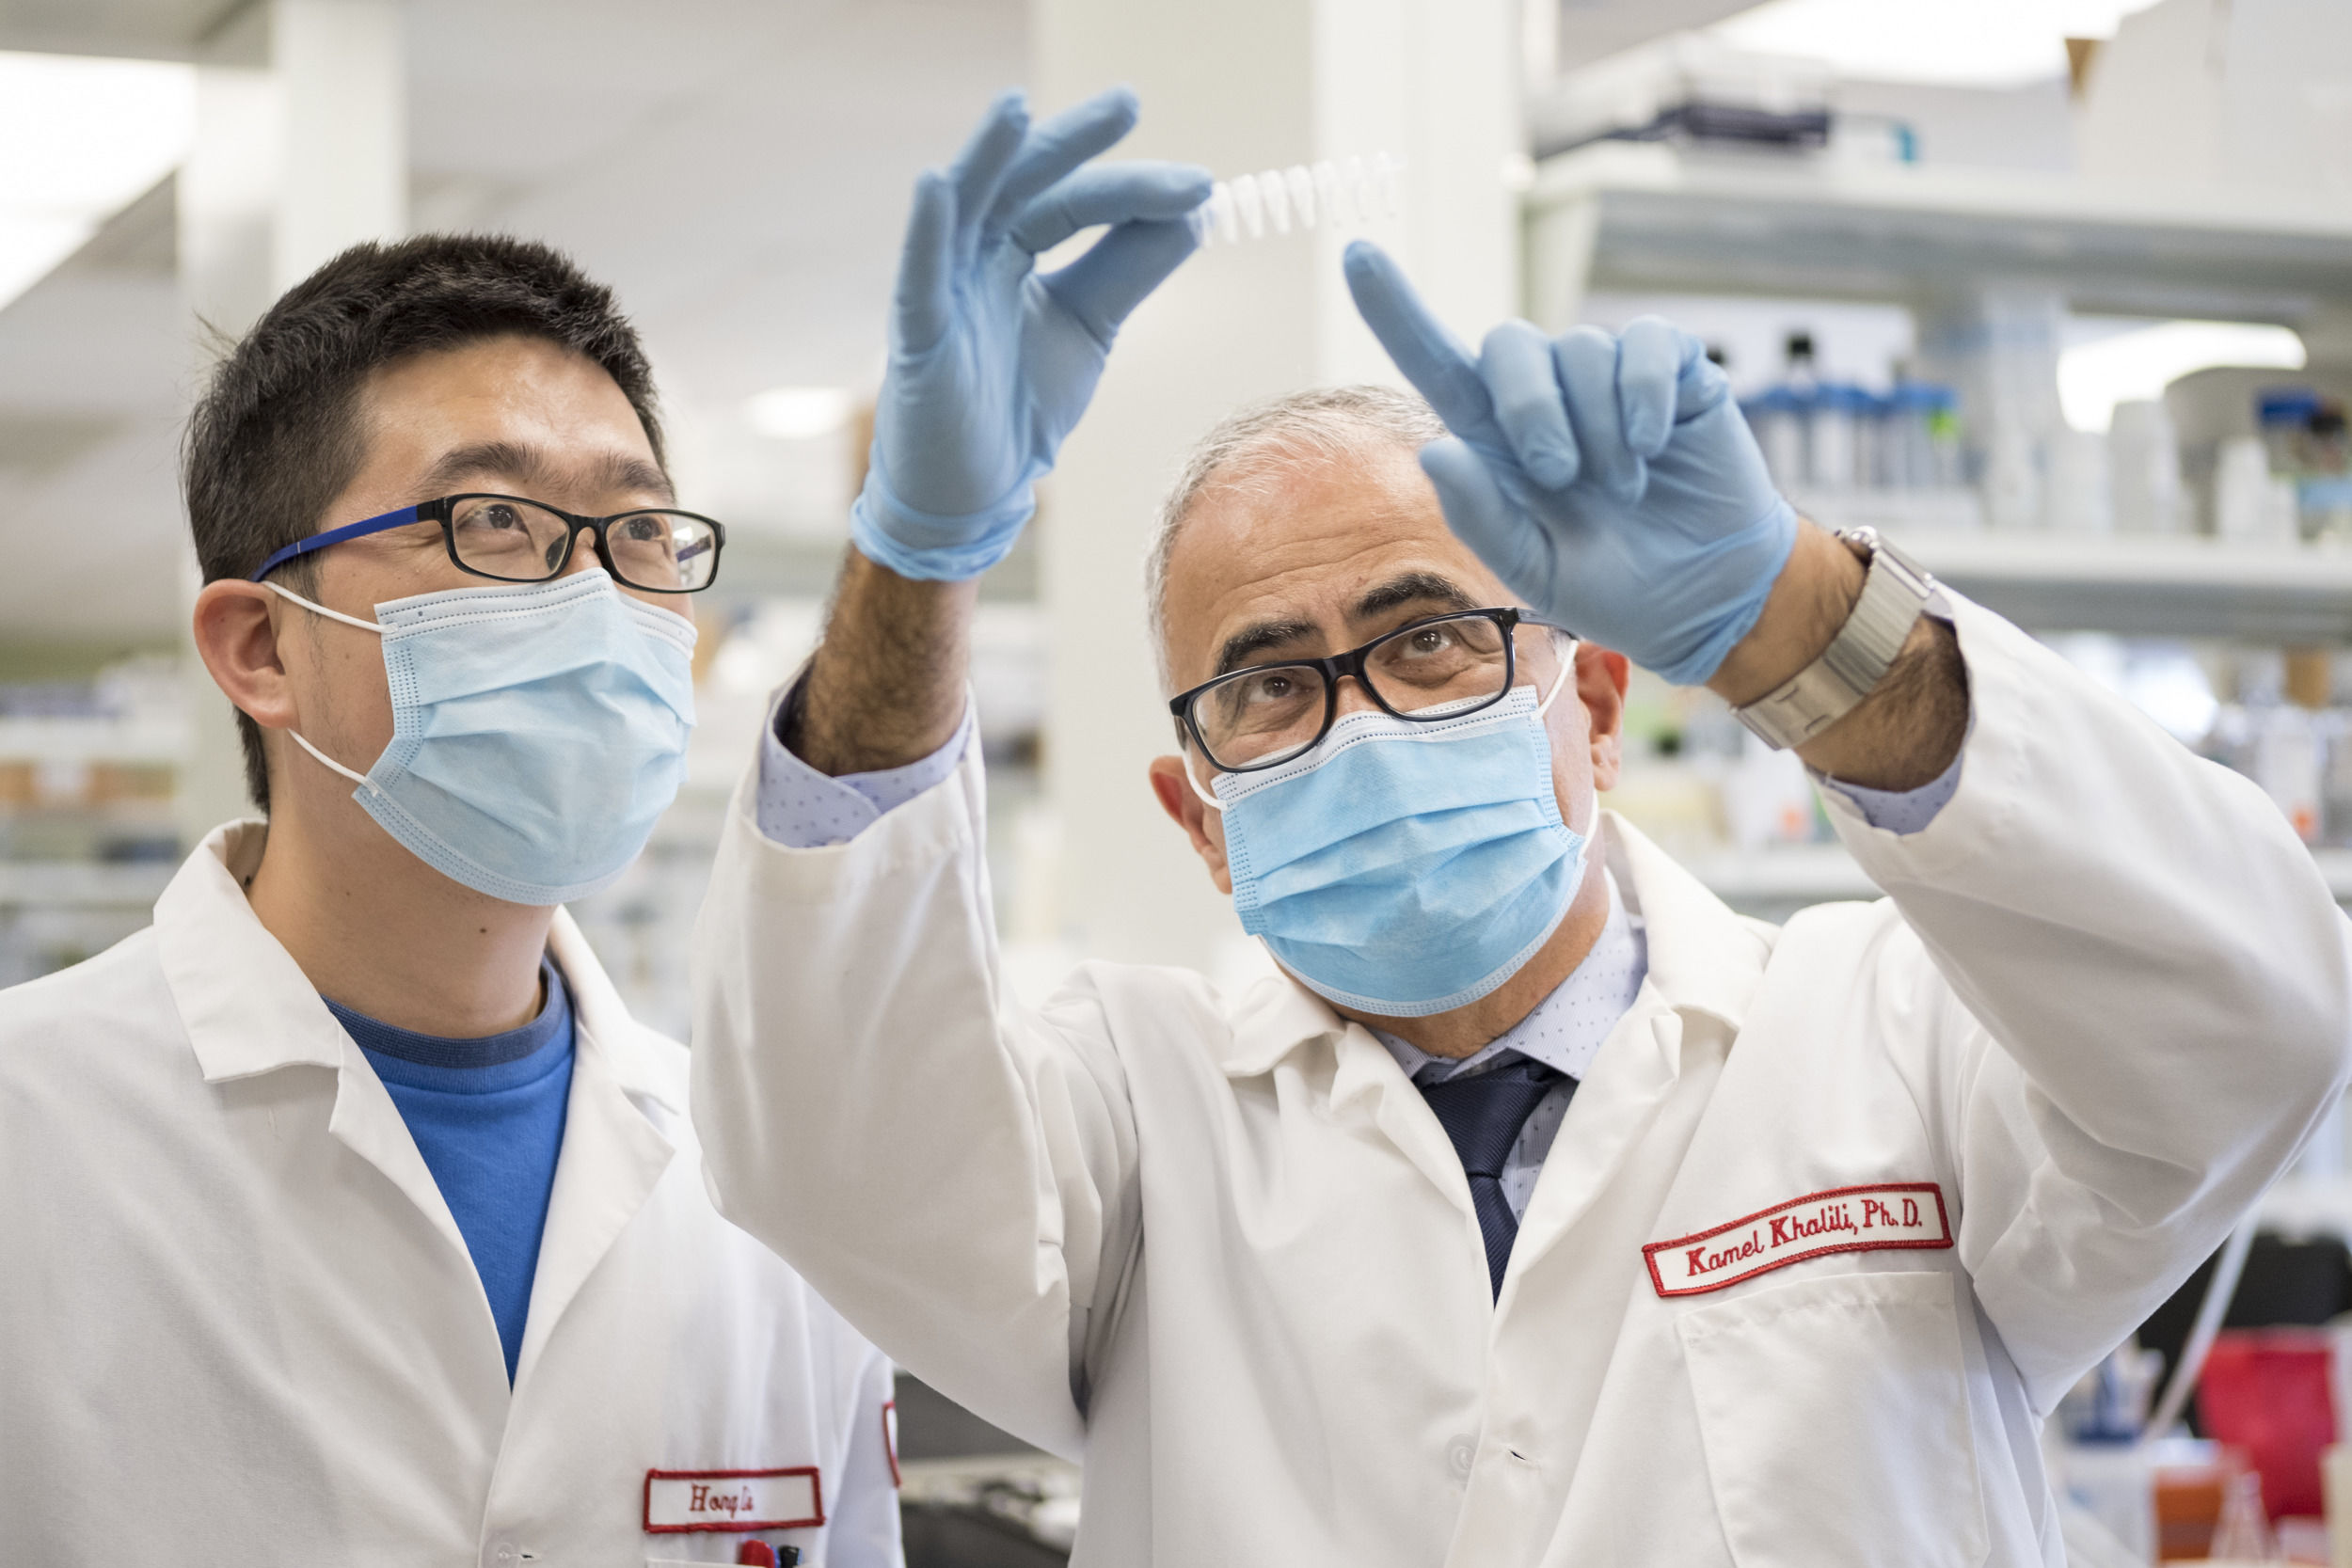 Two mean wearing gloves and masks in the lab